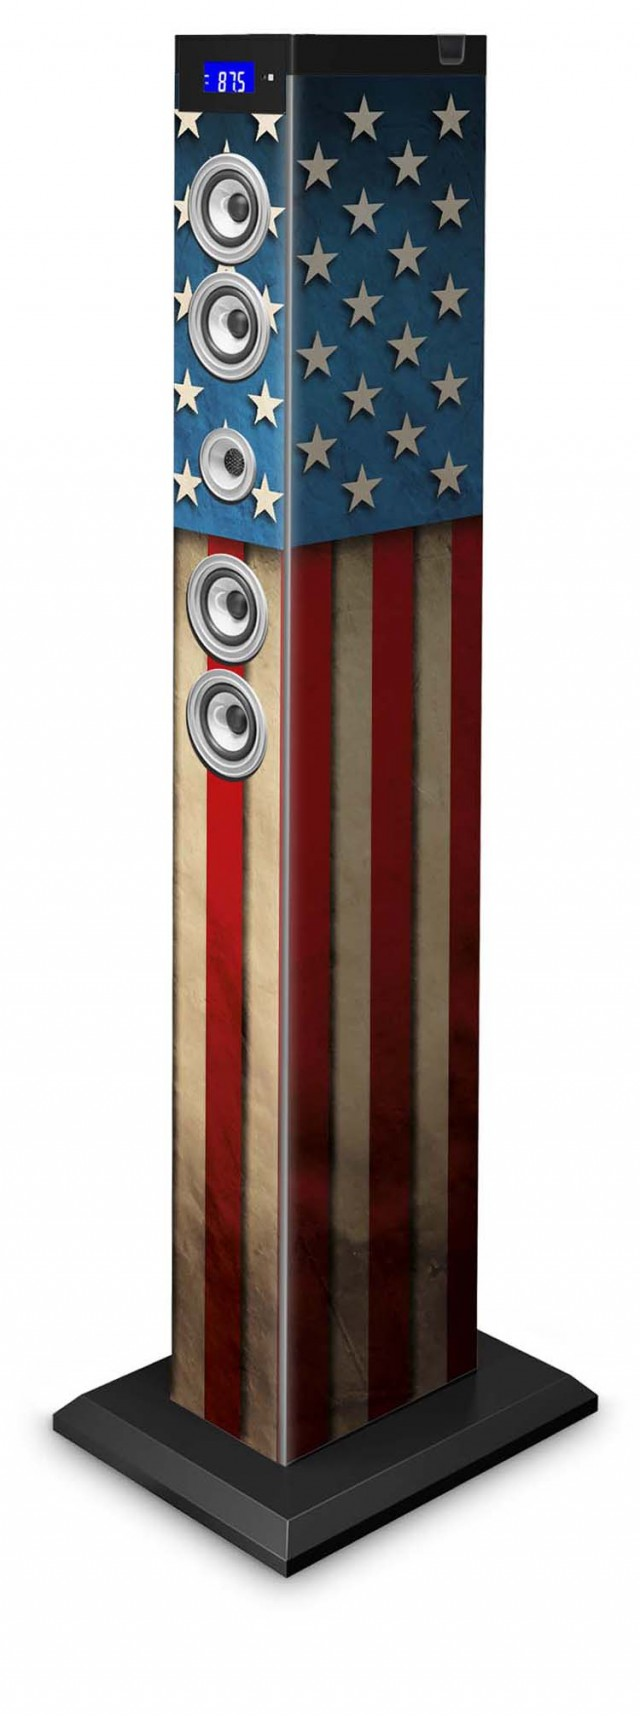 "Multimedia tower ""US flag"" - Packshot"